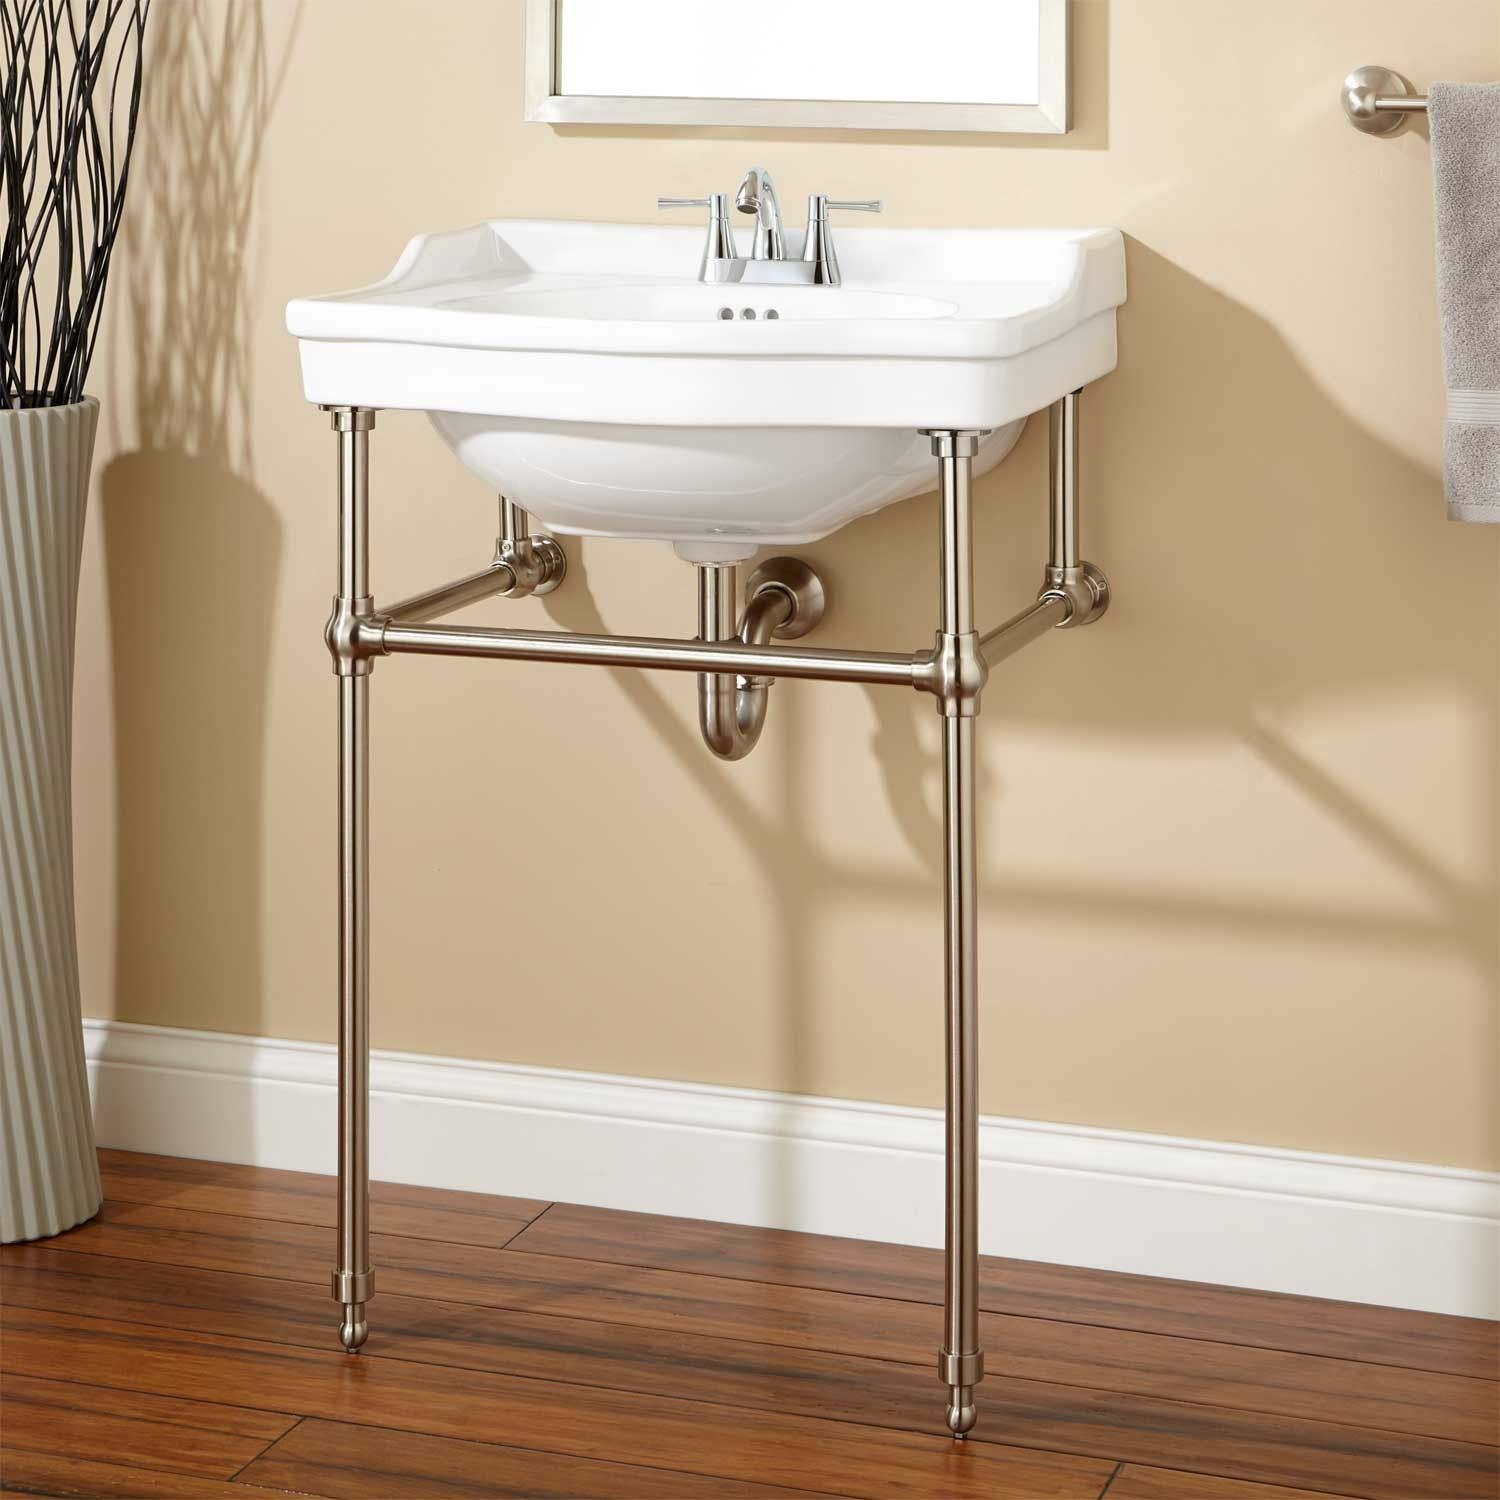 Console sink with chrome legs - Cierra Console Sink With Brass Stand 4 Faucet Drillings Polished Nickel